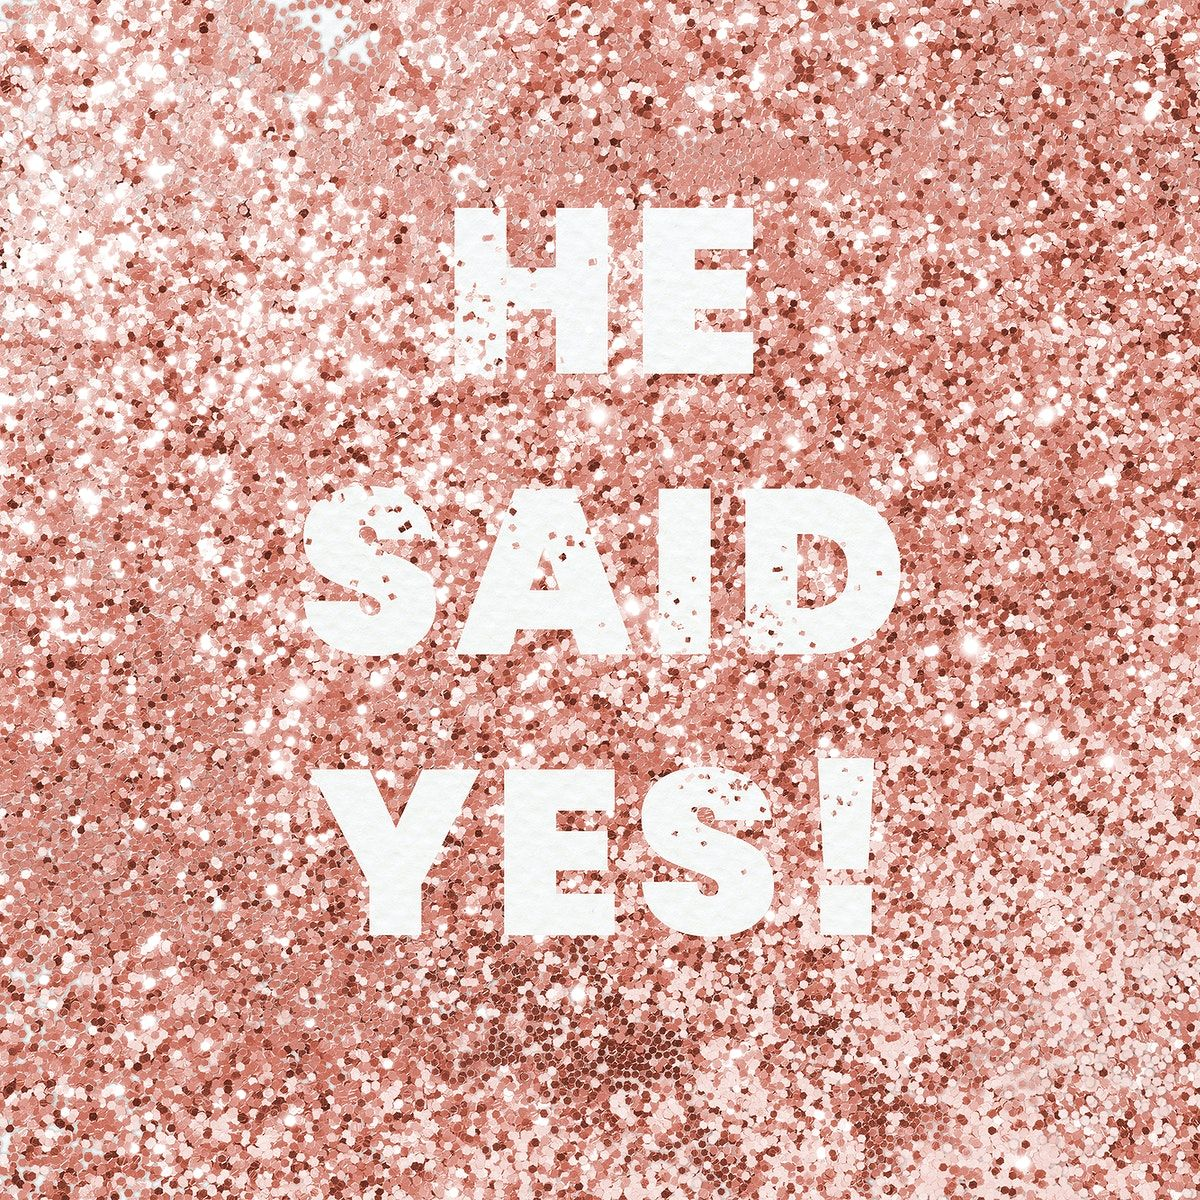 He Said Yes Typography On A Copper Glitter Background Free Image By Rawpixel Com Eve Glitter Background Typography Typography Design